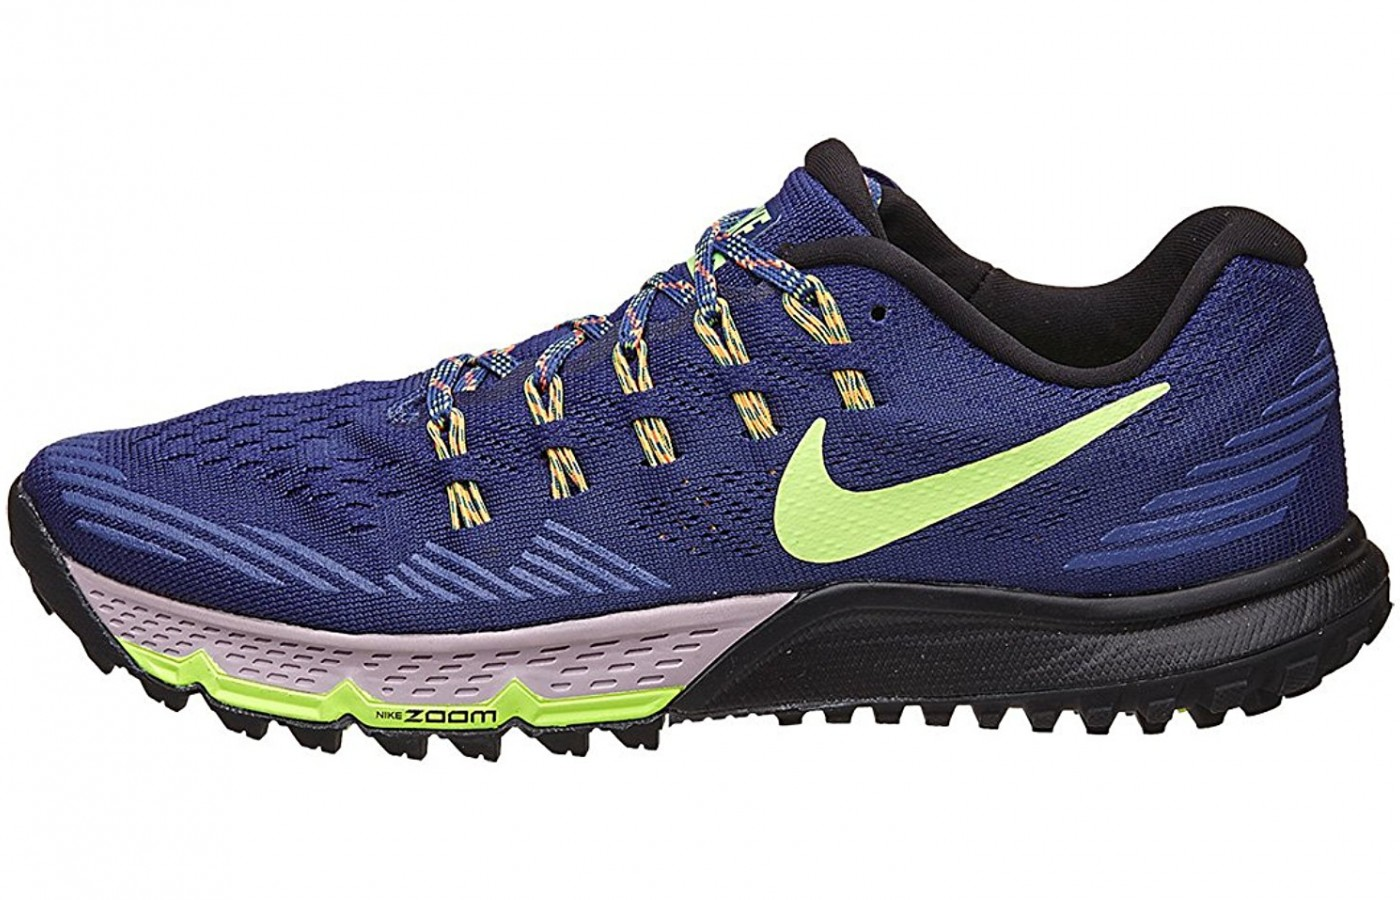 A side view of the Nike Air Zoom Terra Kiger 3 Running Shoe